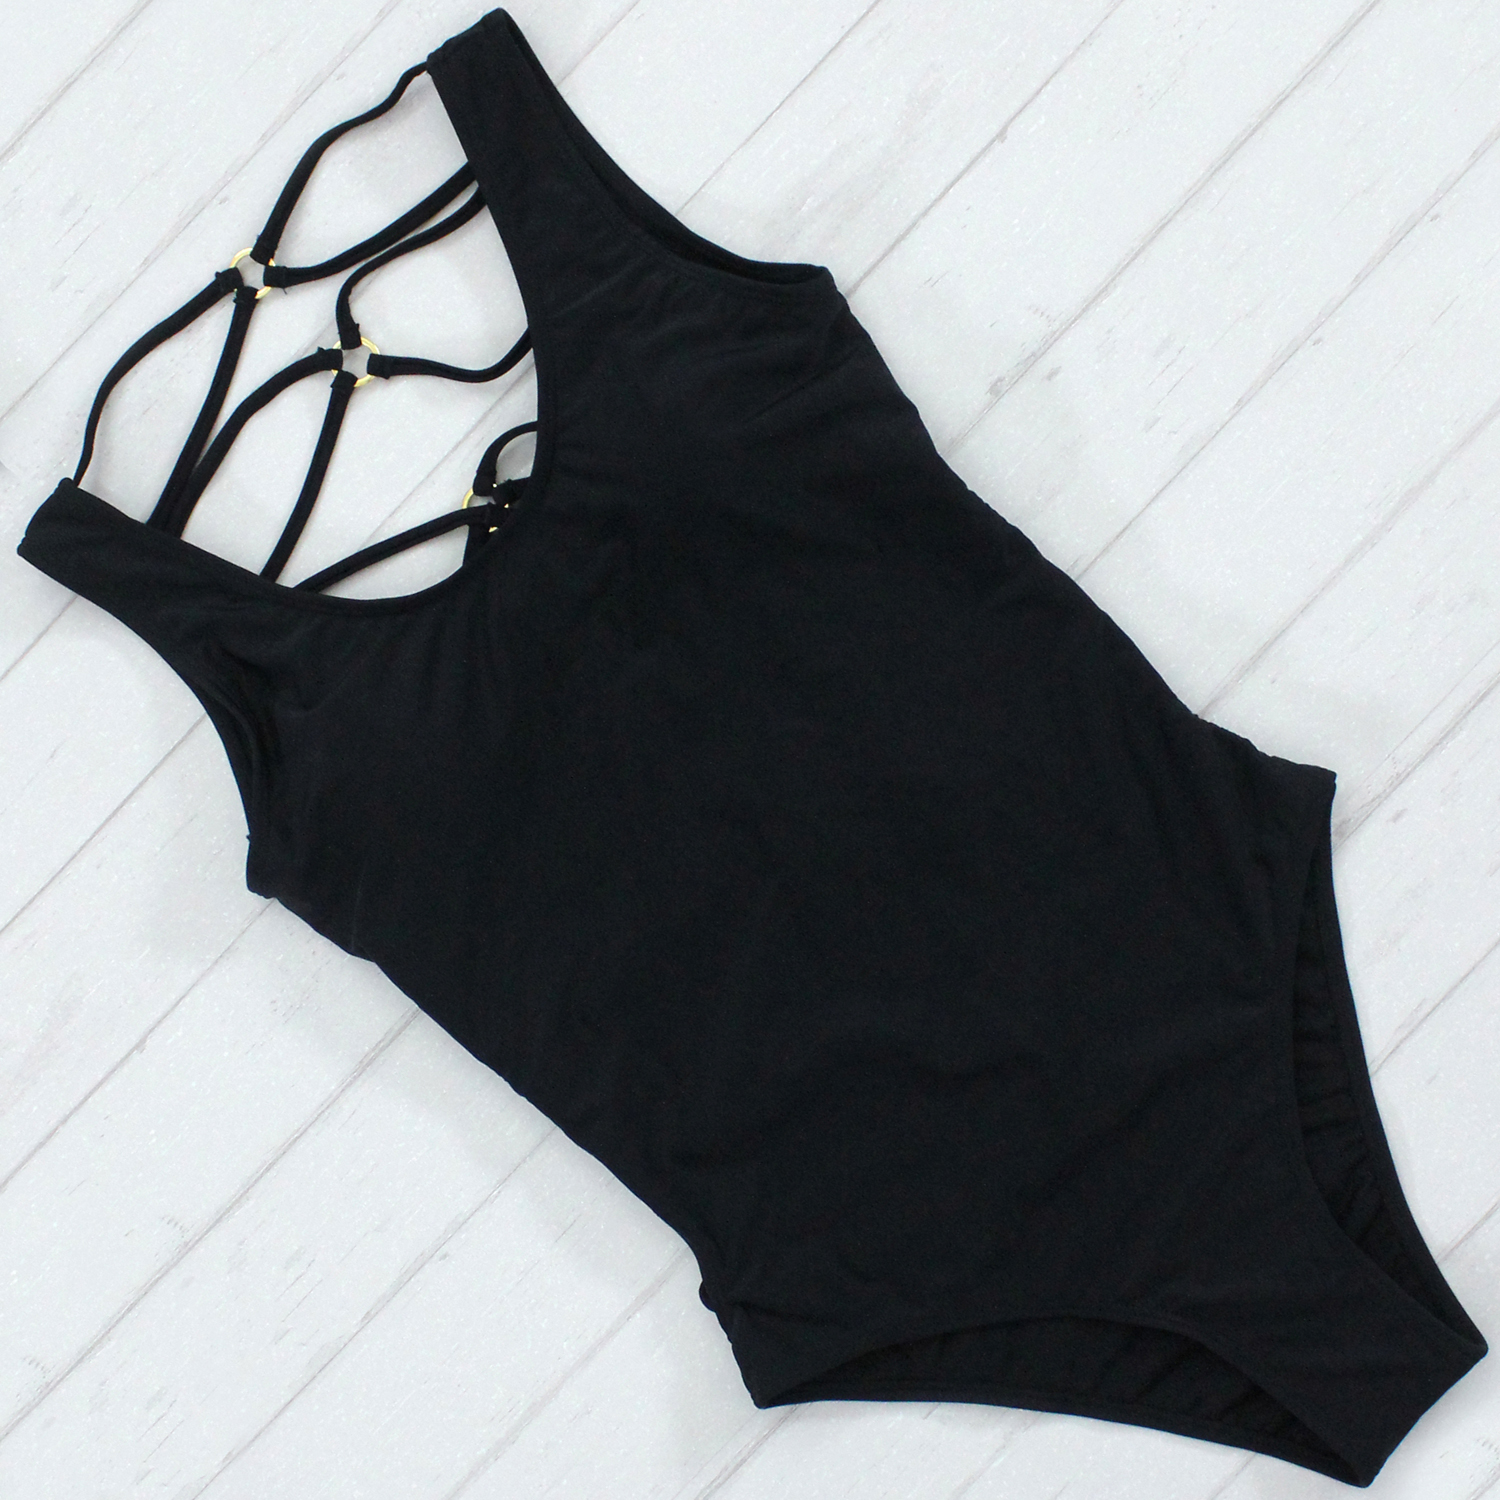 Newest 2017 Sexy One Piece Swimsuit Women Swimwear Bodysuit Bathing Suit Vintage Beach Wear Bandage Monokini Swimsuit Black XL sexy bodysuit 2017 deep v neck one piece swimsuit monokini bandage swimwear women white beach bathing suit biquini black vintage